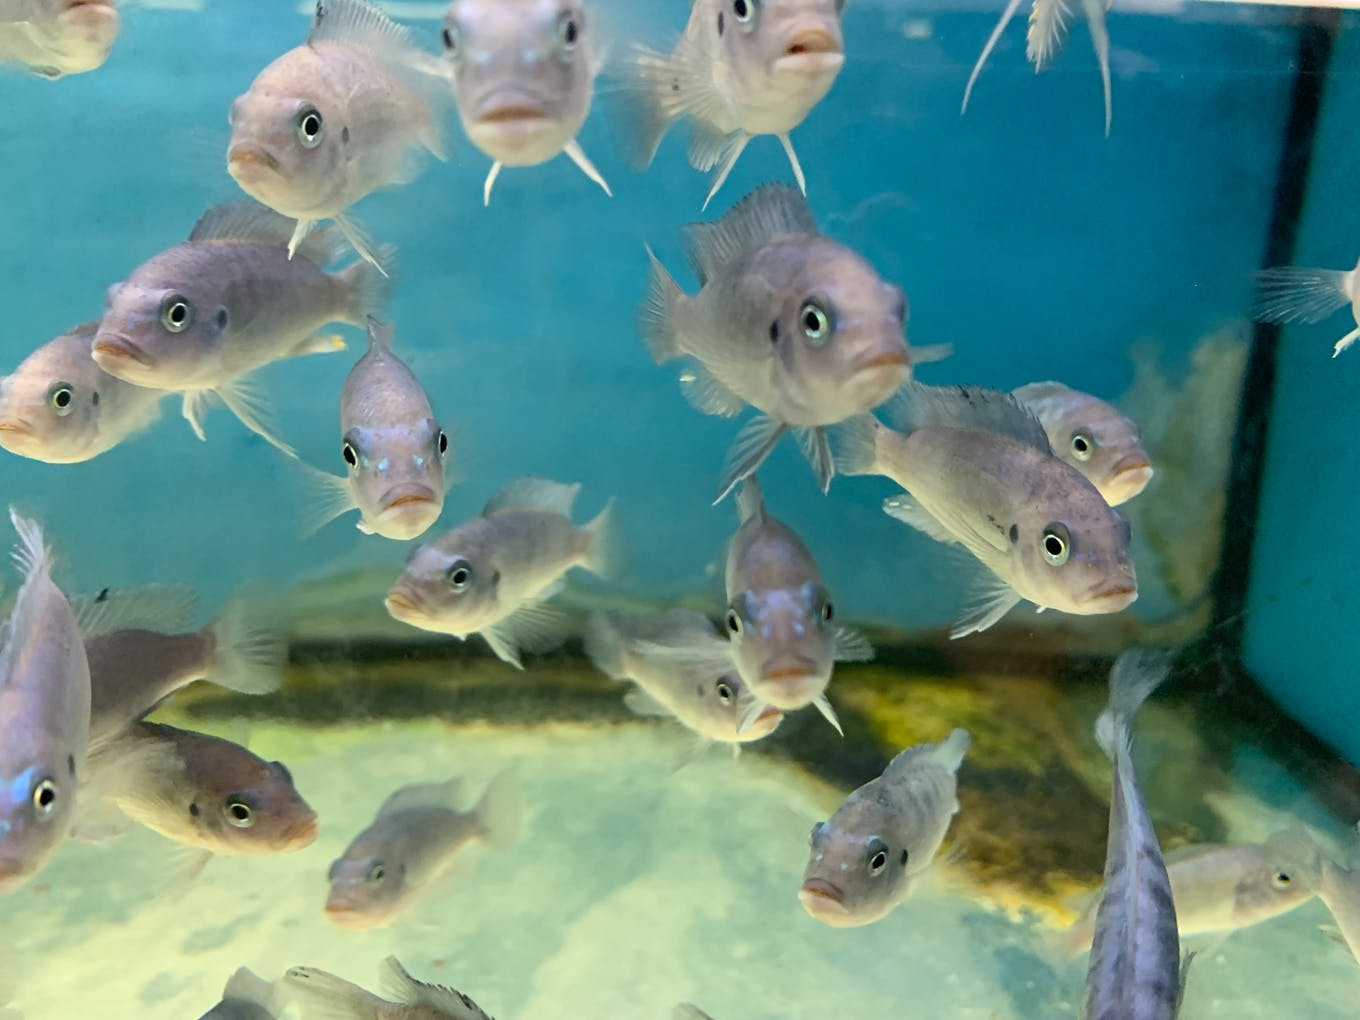 Fish crowd together in a tank with no enrichment in Singapore